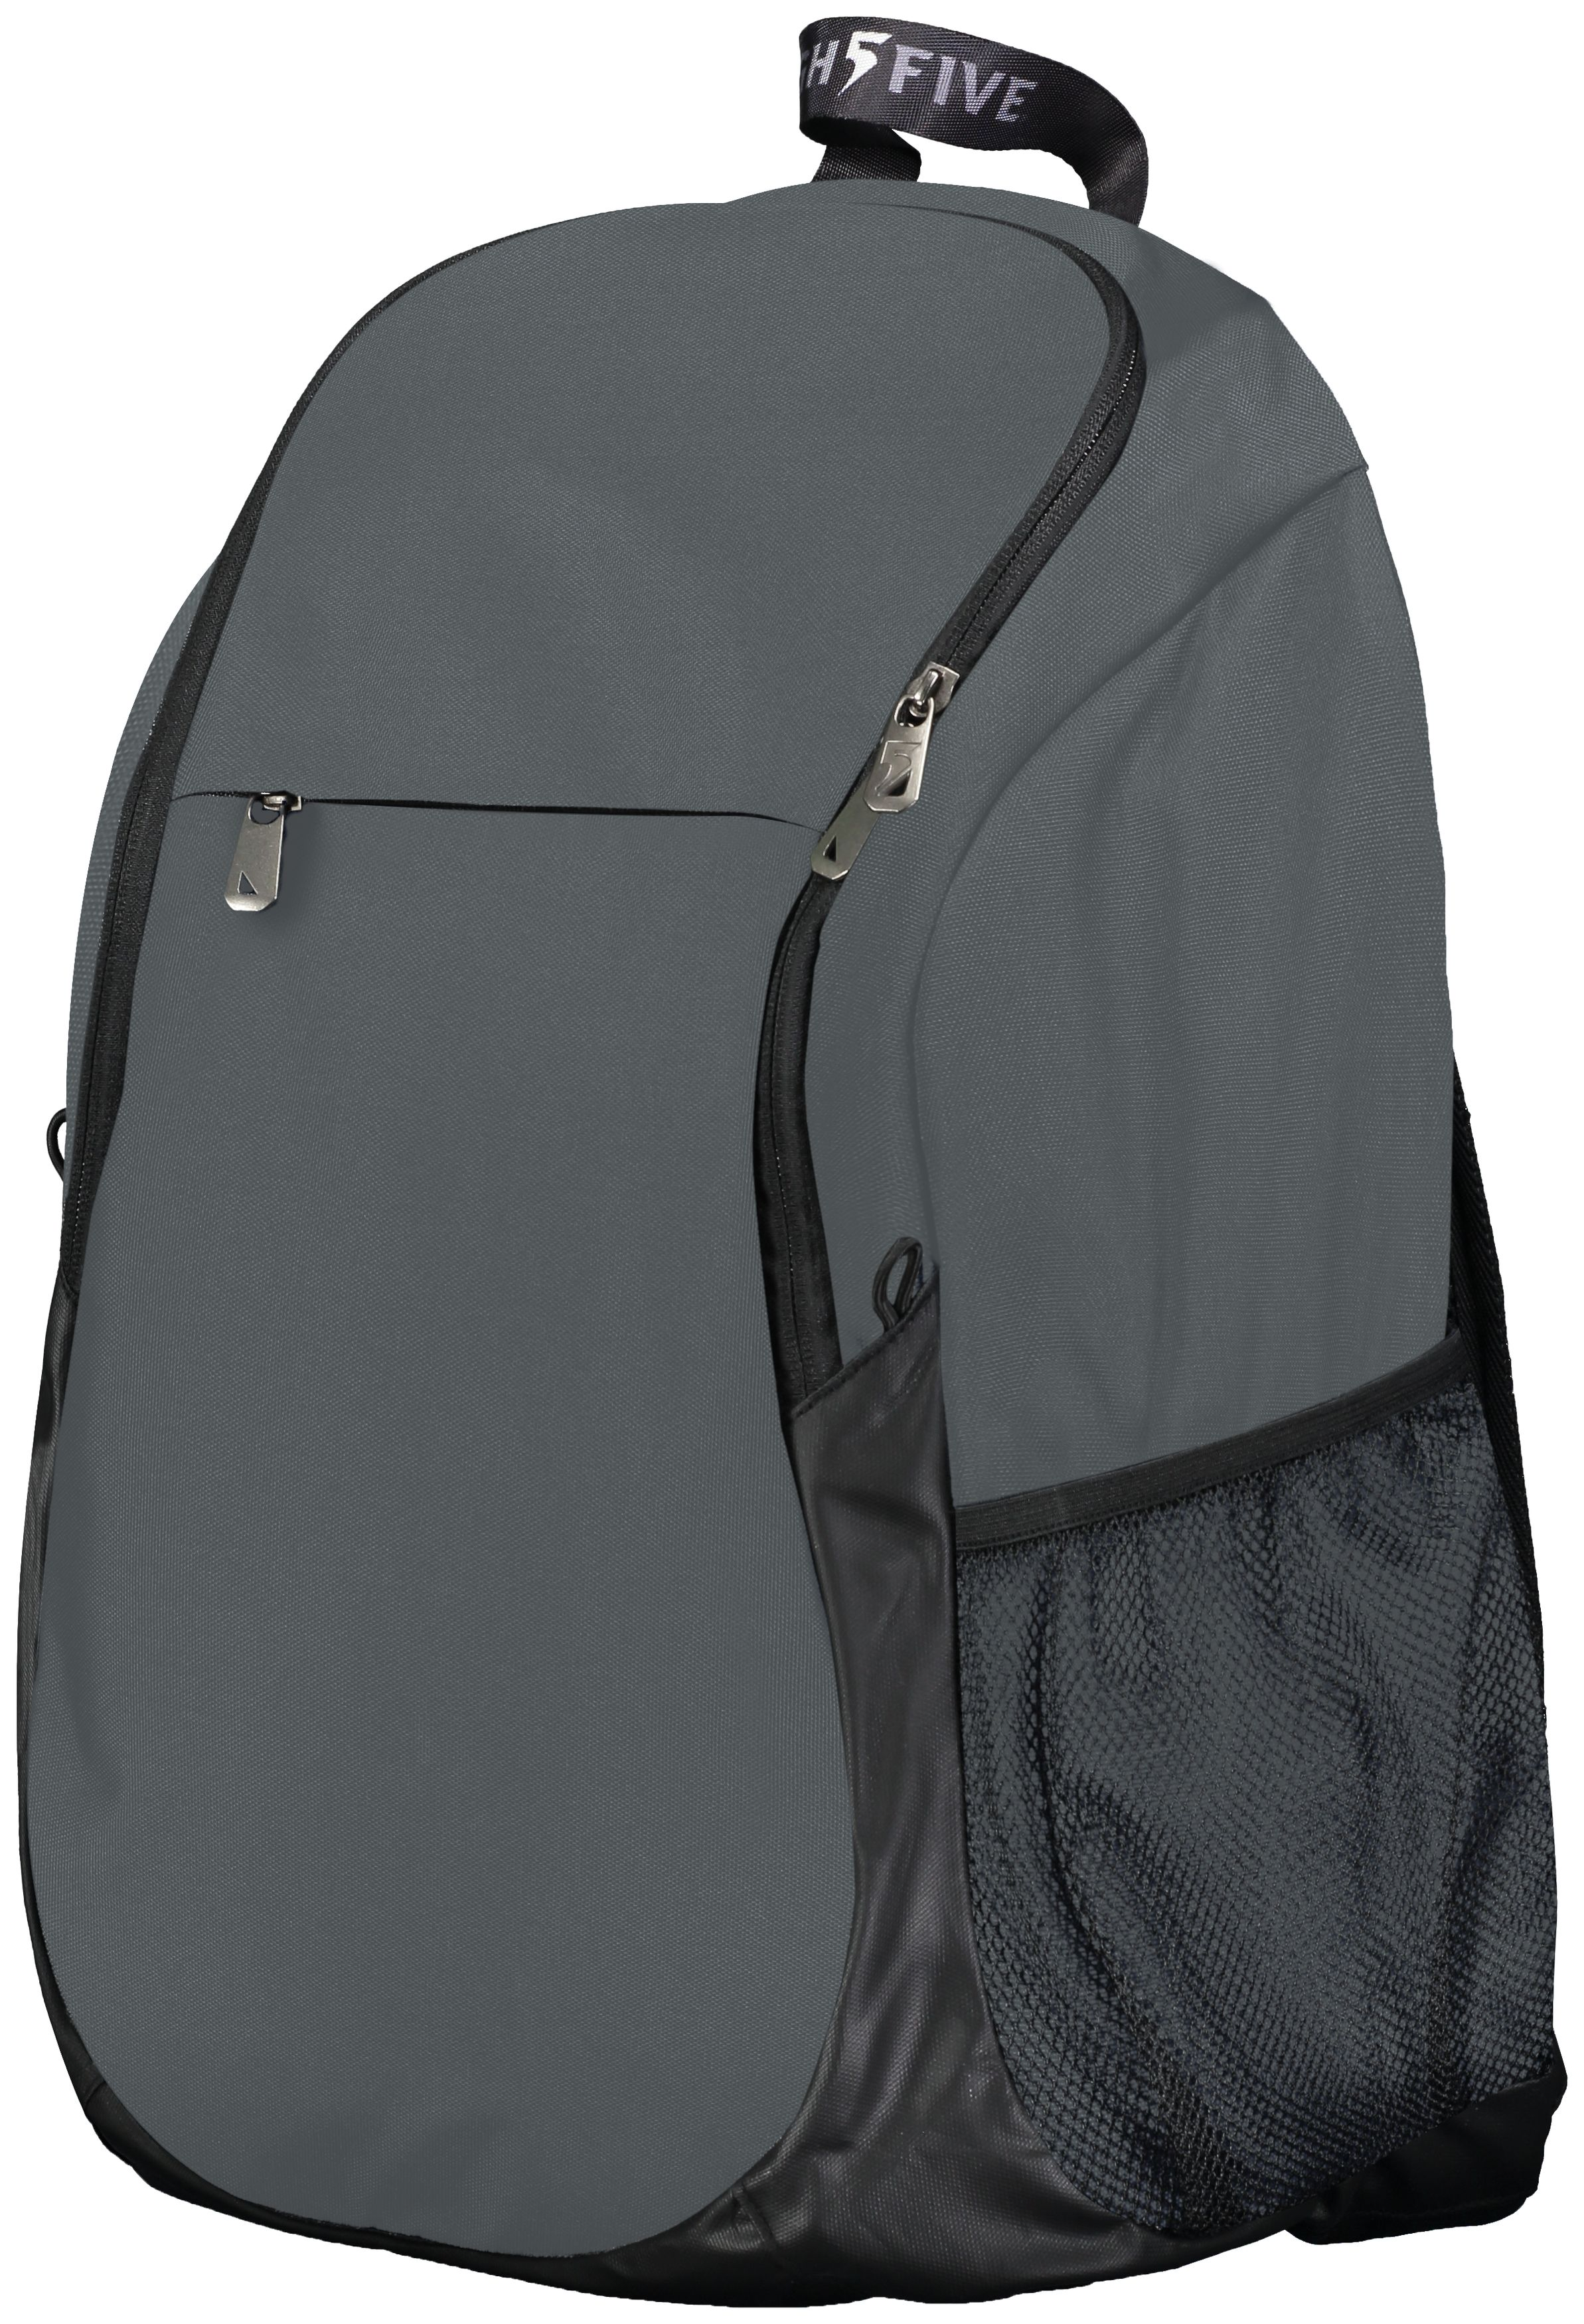 Free Form Backpack